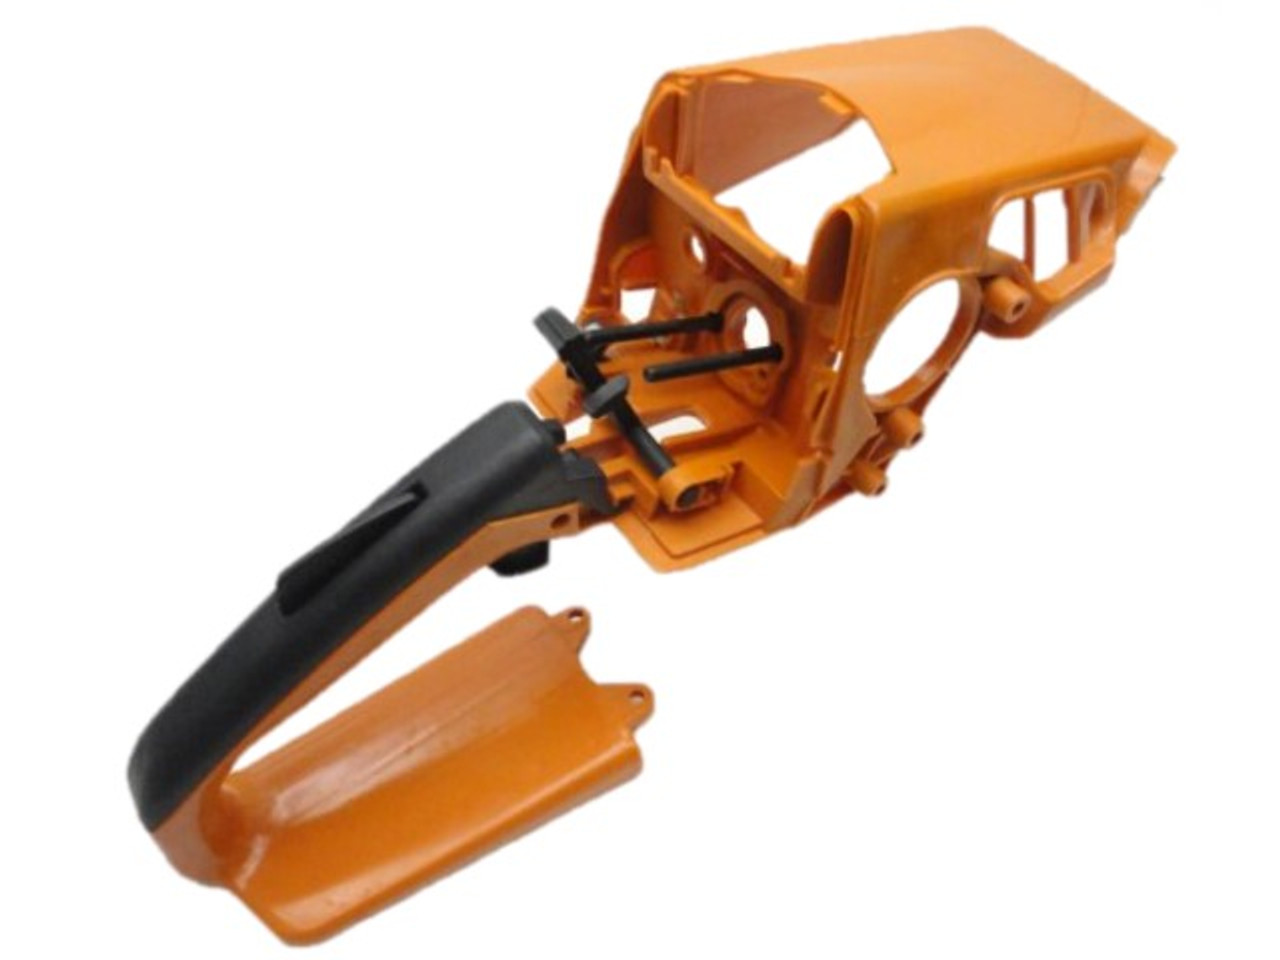 Stihl Ms 210, 230, 250, Rear Handle And Engine Cover Assembly New 11237901013